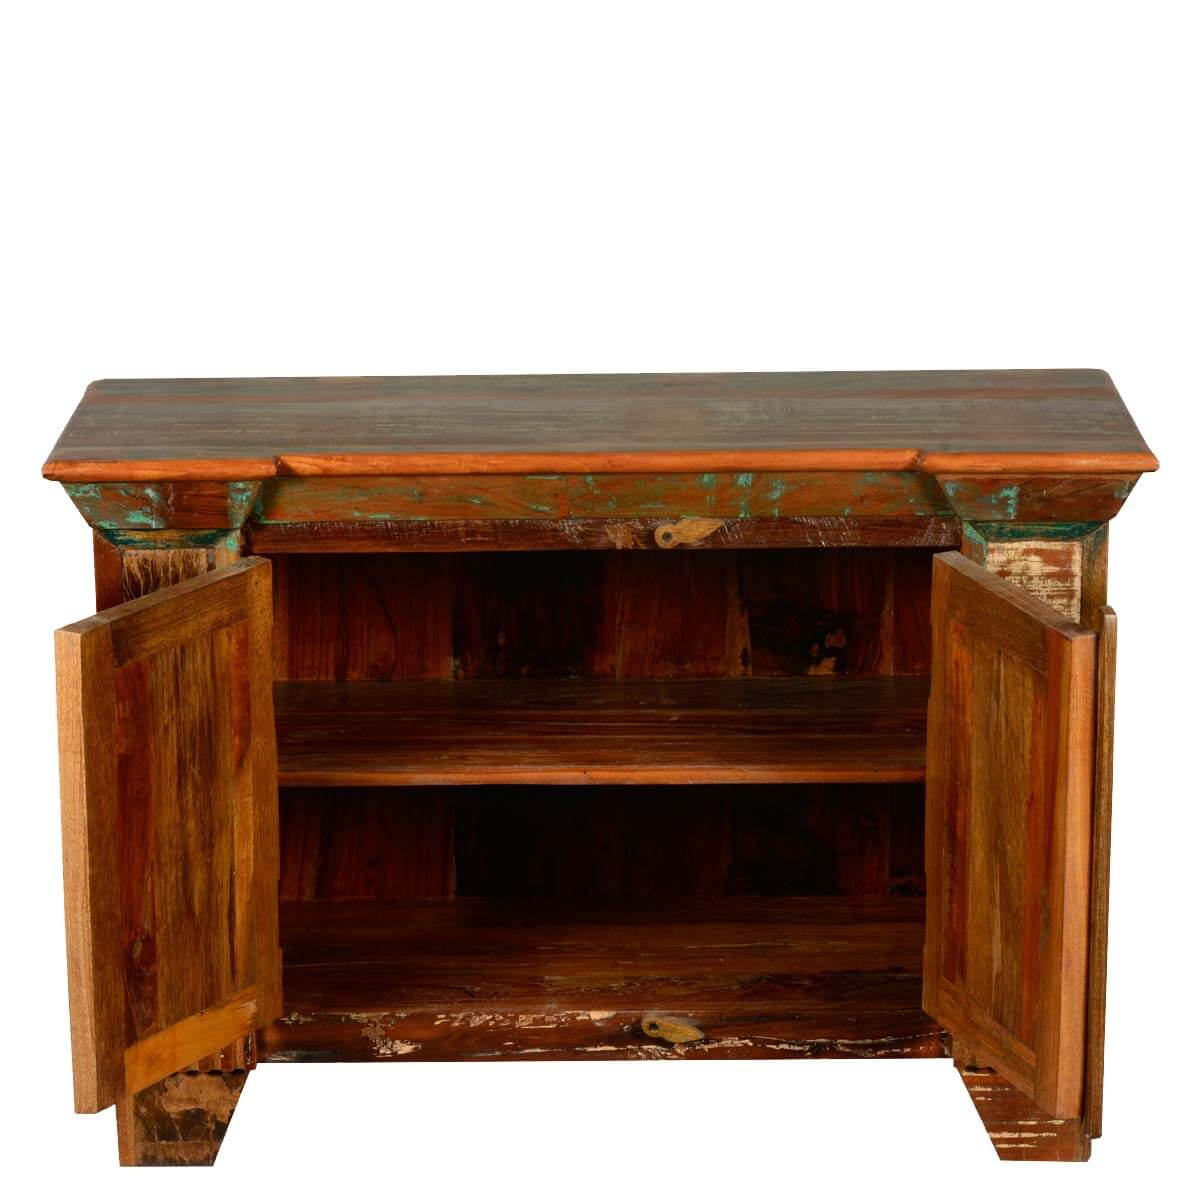 Reclaimed wood retro style distressed quot small tv stand